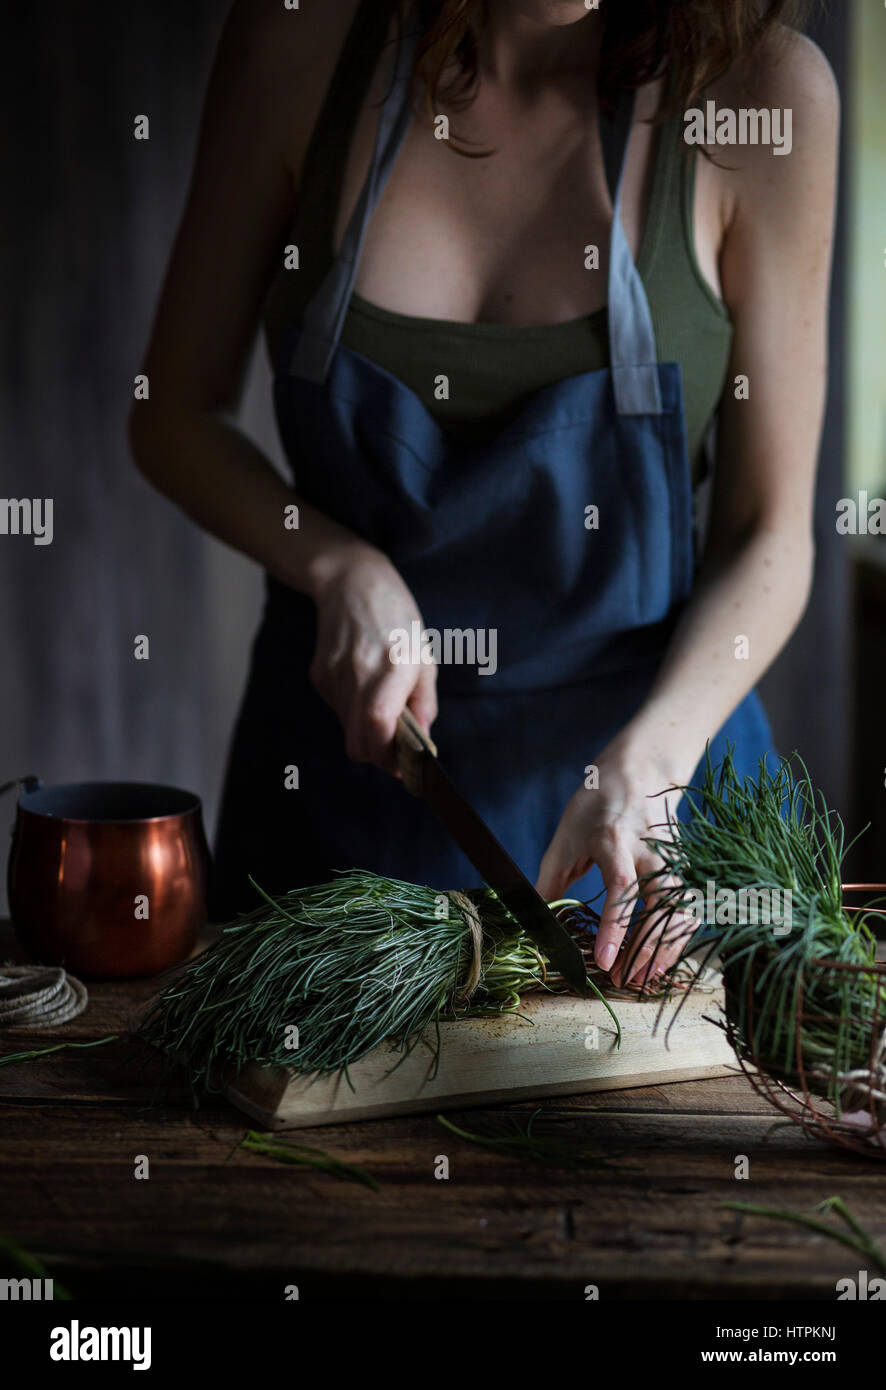 Woman cutting agretti, a typical italian spring vegetables - Stock Image